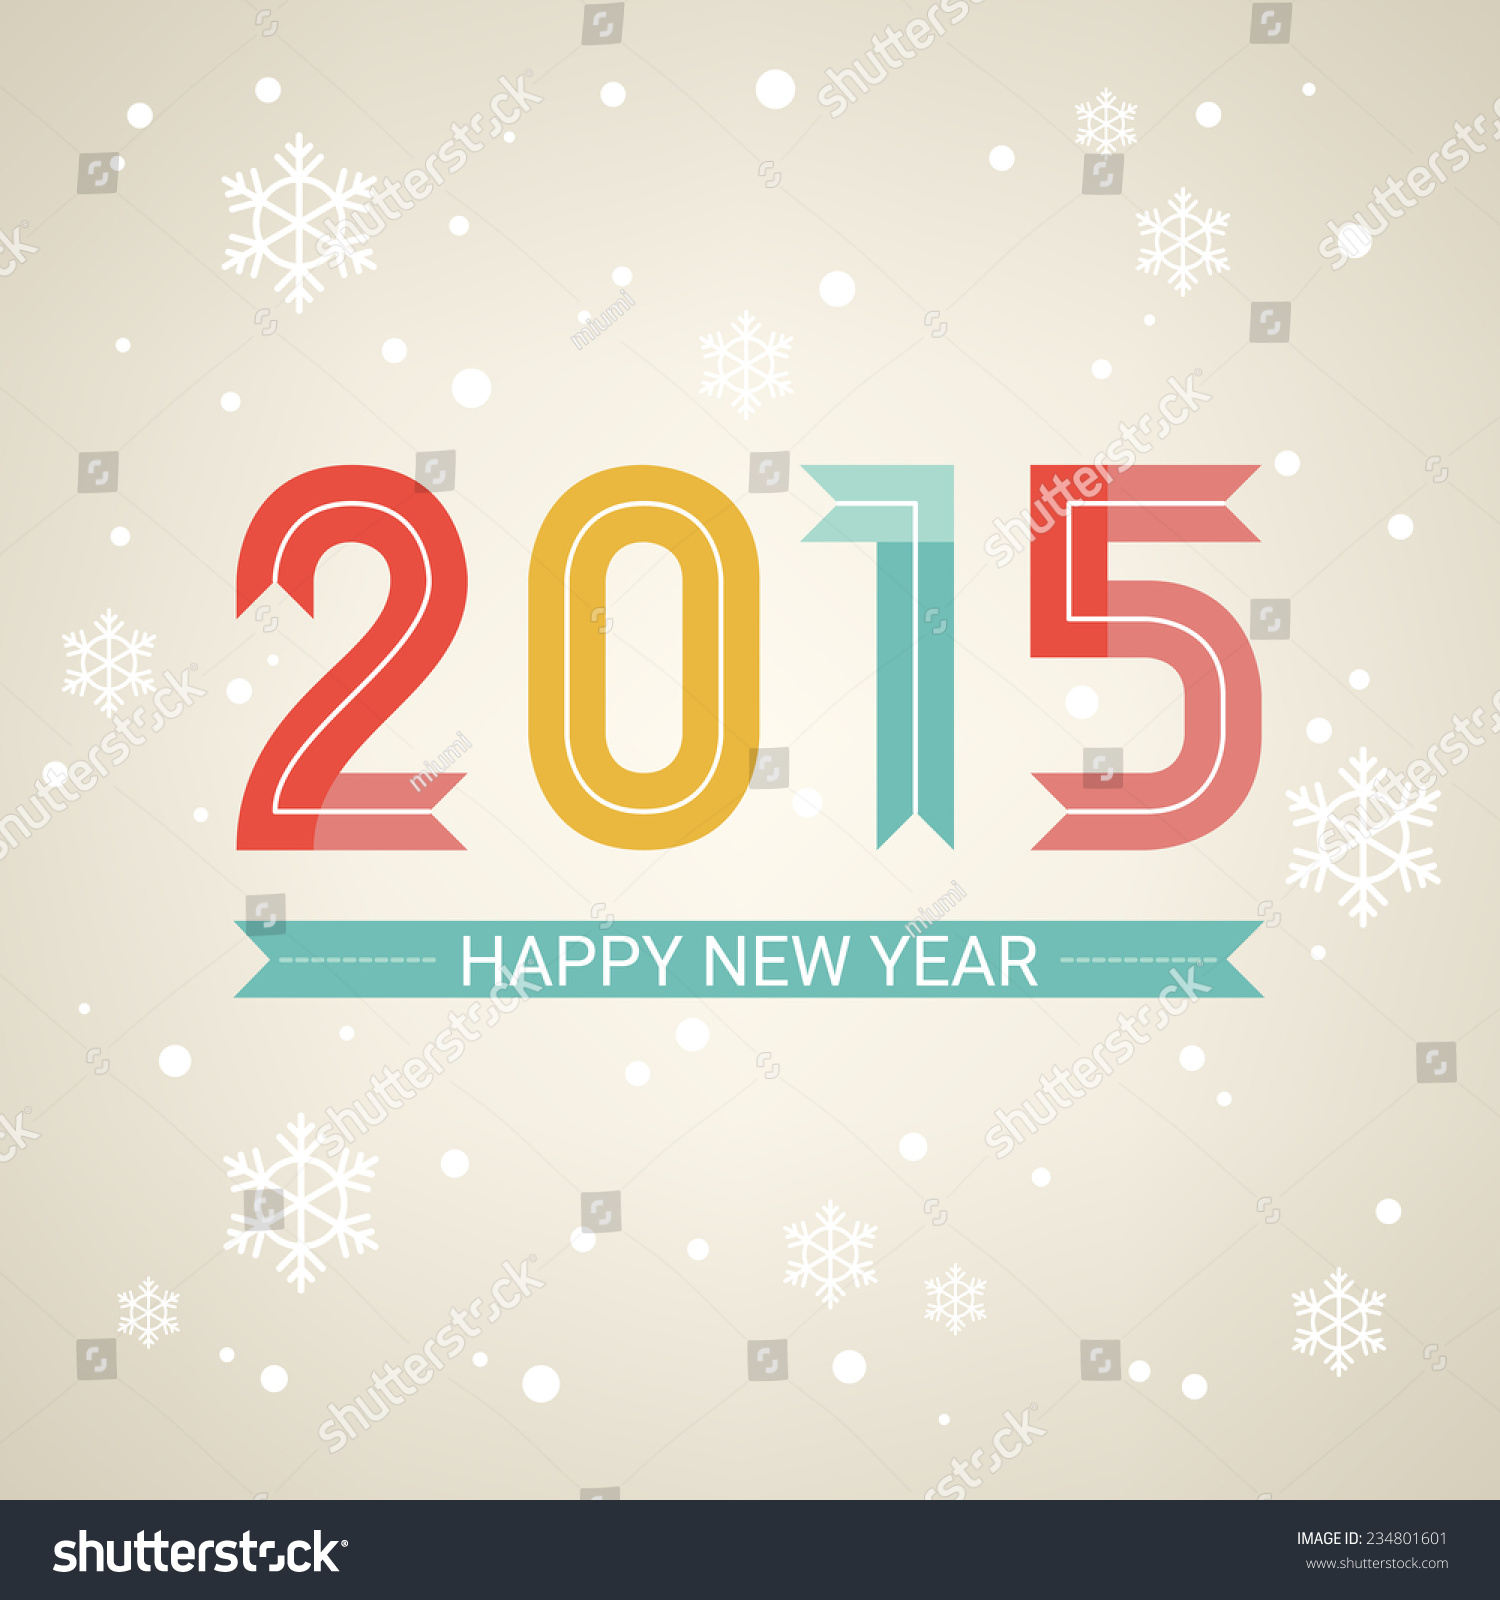 Happy new year 2015 holiday greeting stock vector 234801601 happy new year 2015 holiday greeting card with numbers from ribbons on snowflake background m4hsunfo